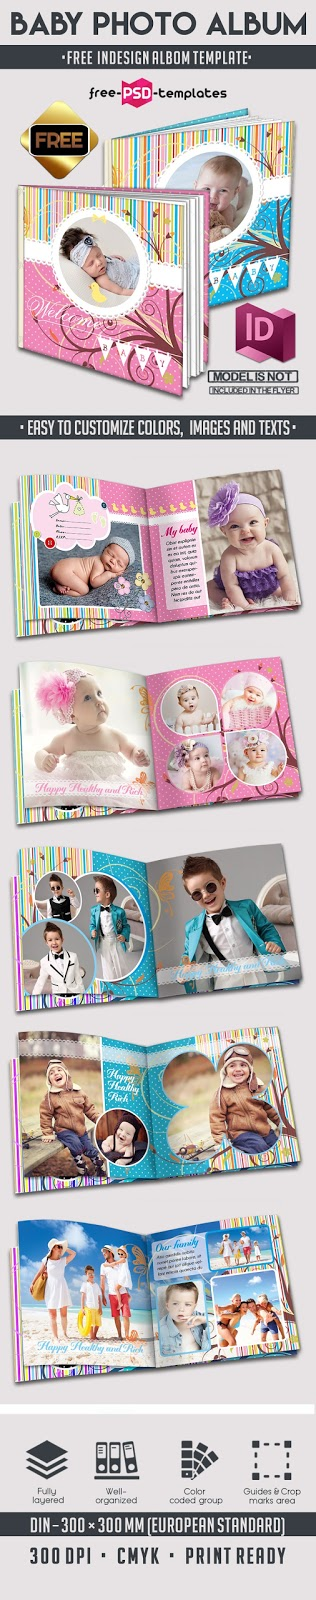 Template Album Foto Bayi